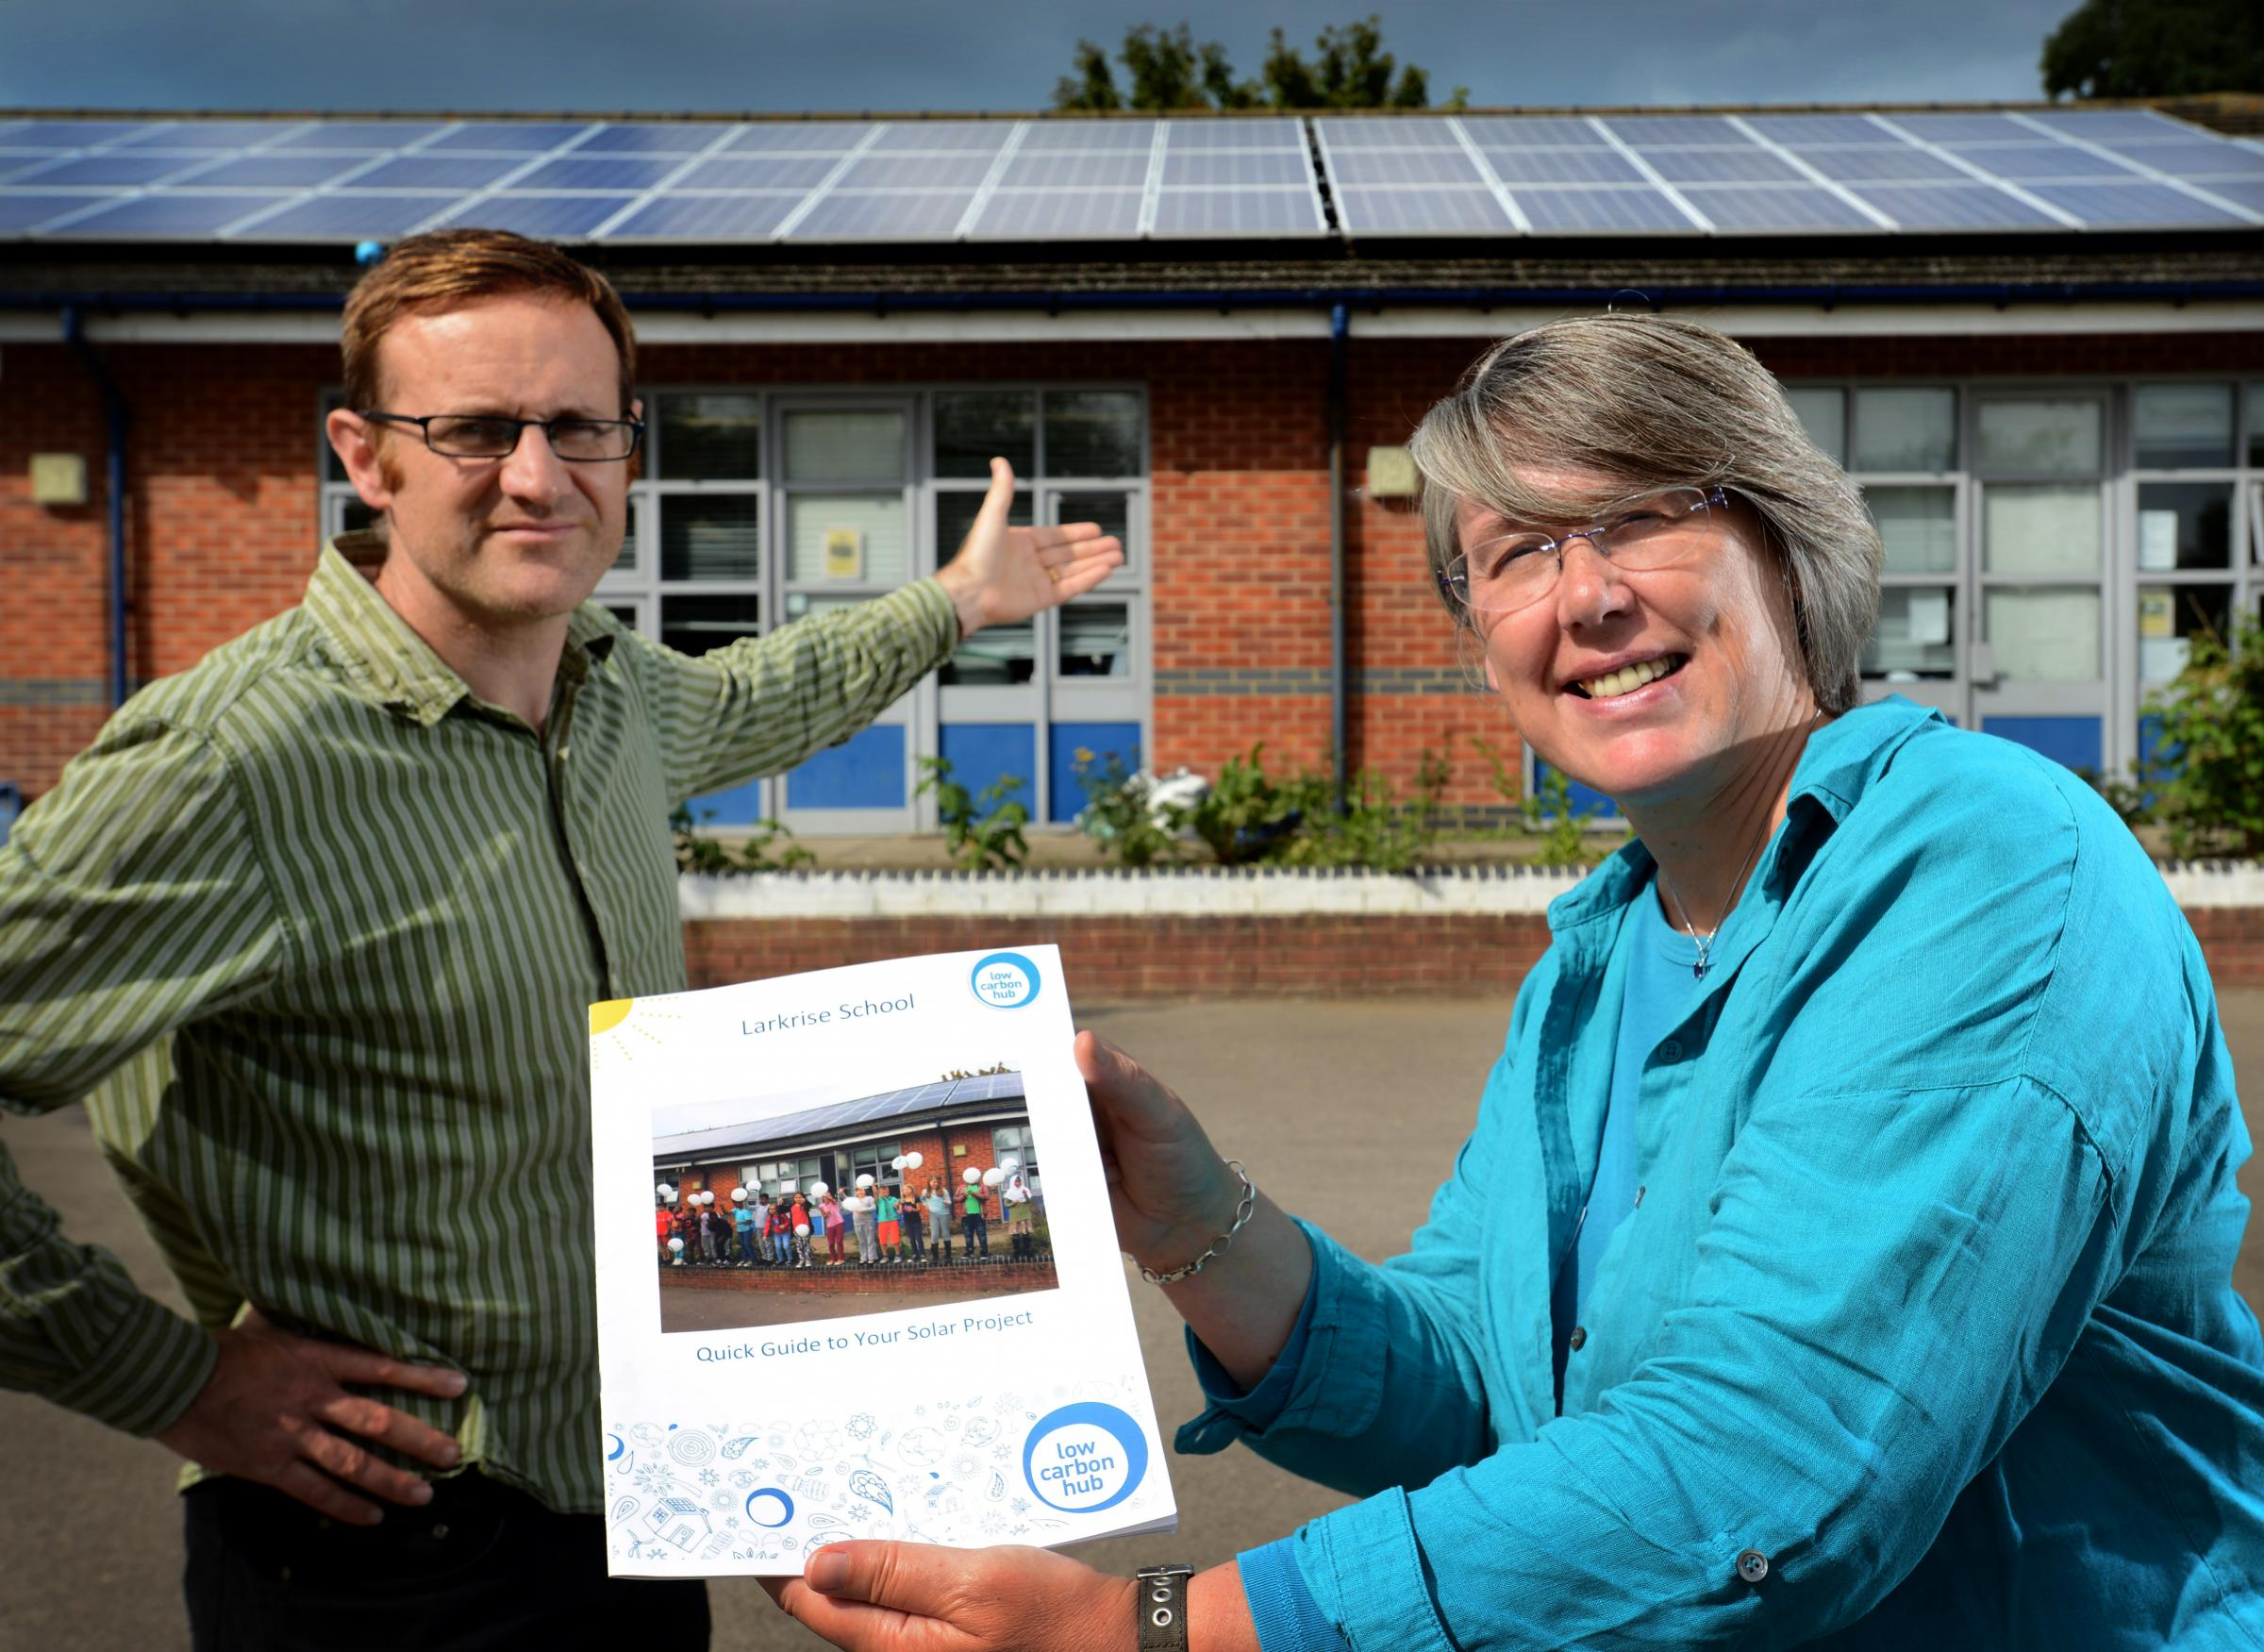 Low Carbon Hub CEO Barbara Hammond, right, with the hub's solar panel installation at Larkrise School and teacher Ed Finch. Picture: Richard Cave